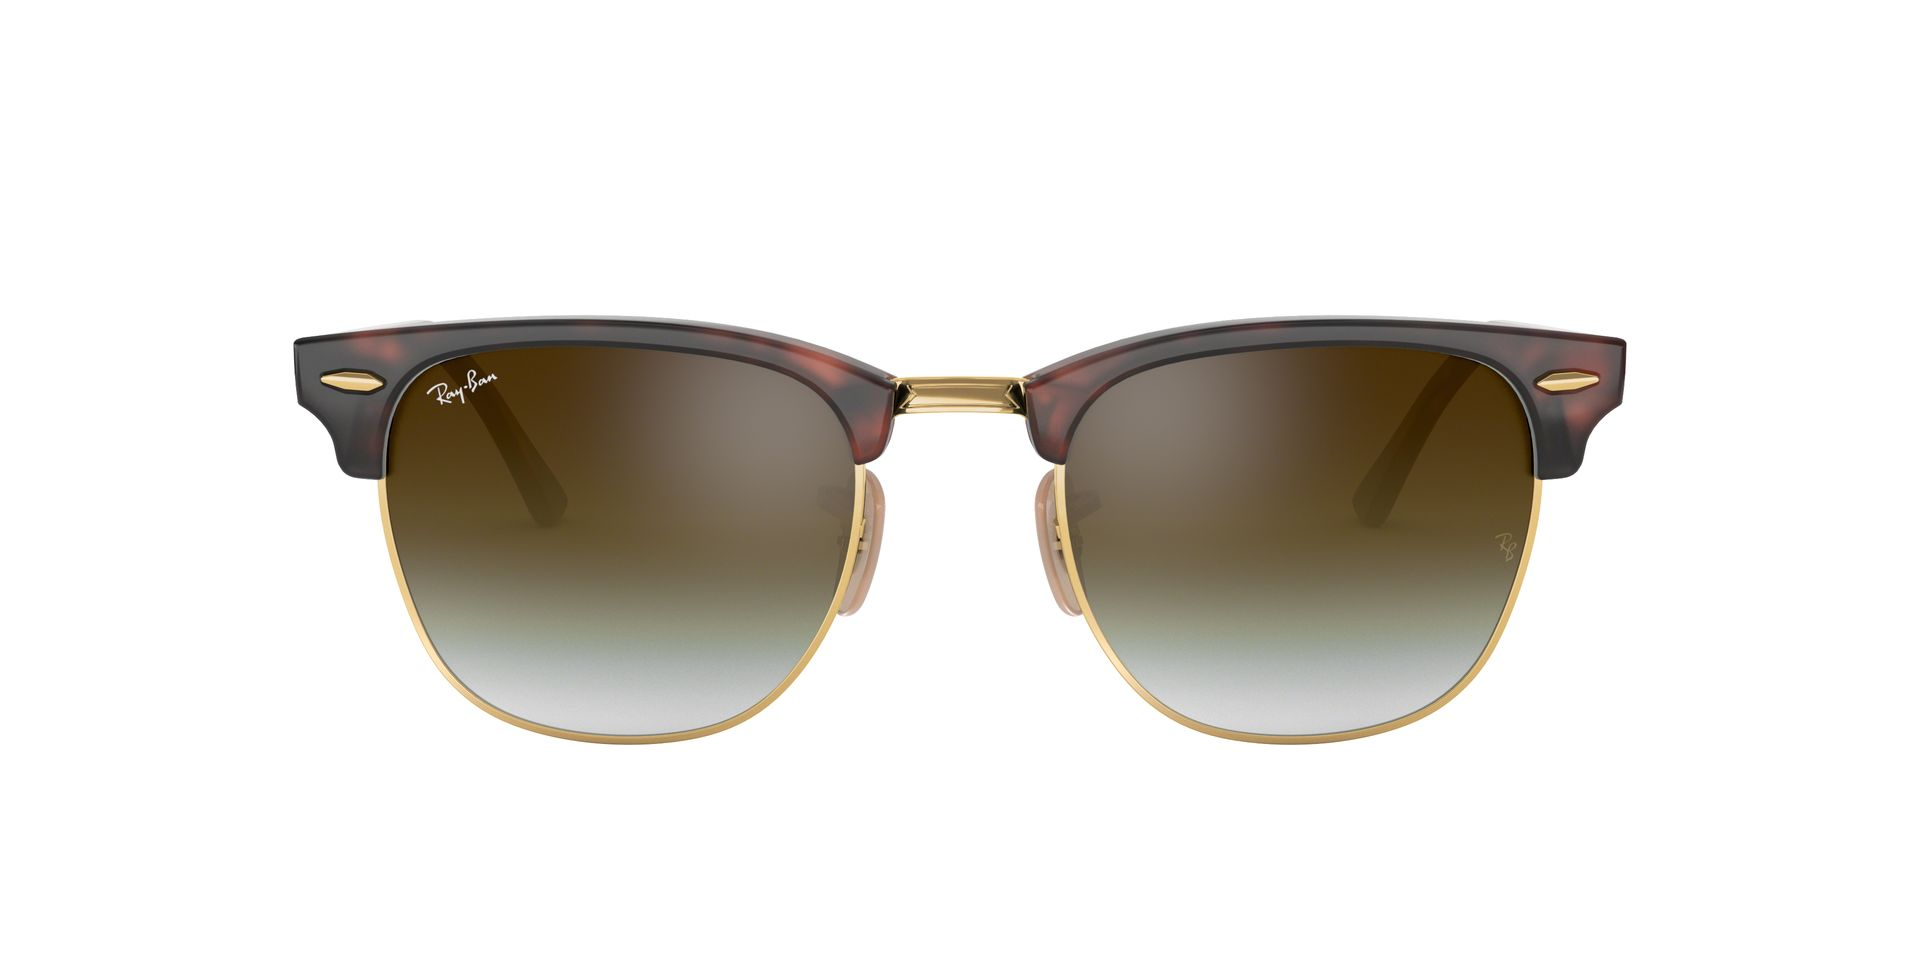 2d7857a52975d8 Brillenchic-onlineshop in Berlin - Ray Ban CLUBMASTER RB 3016 990 9J